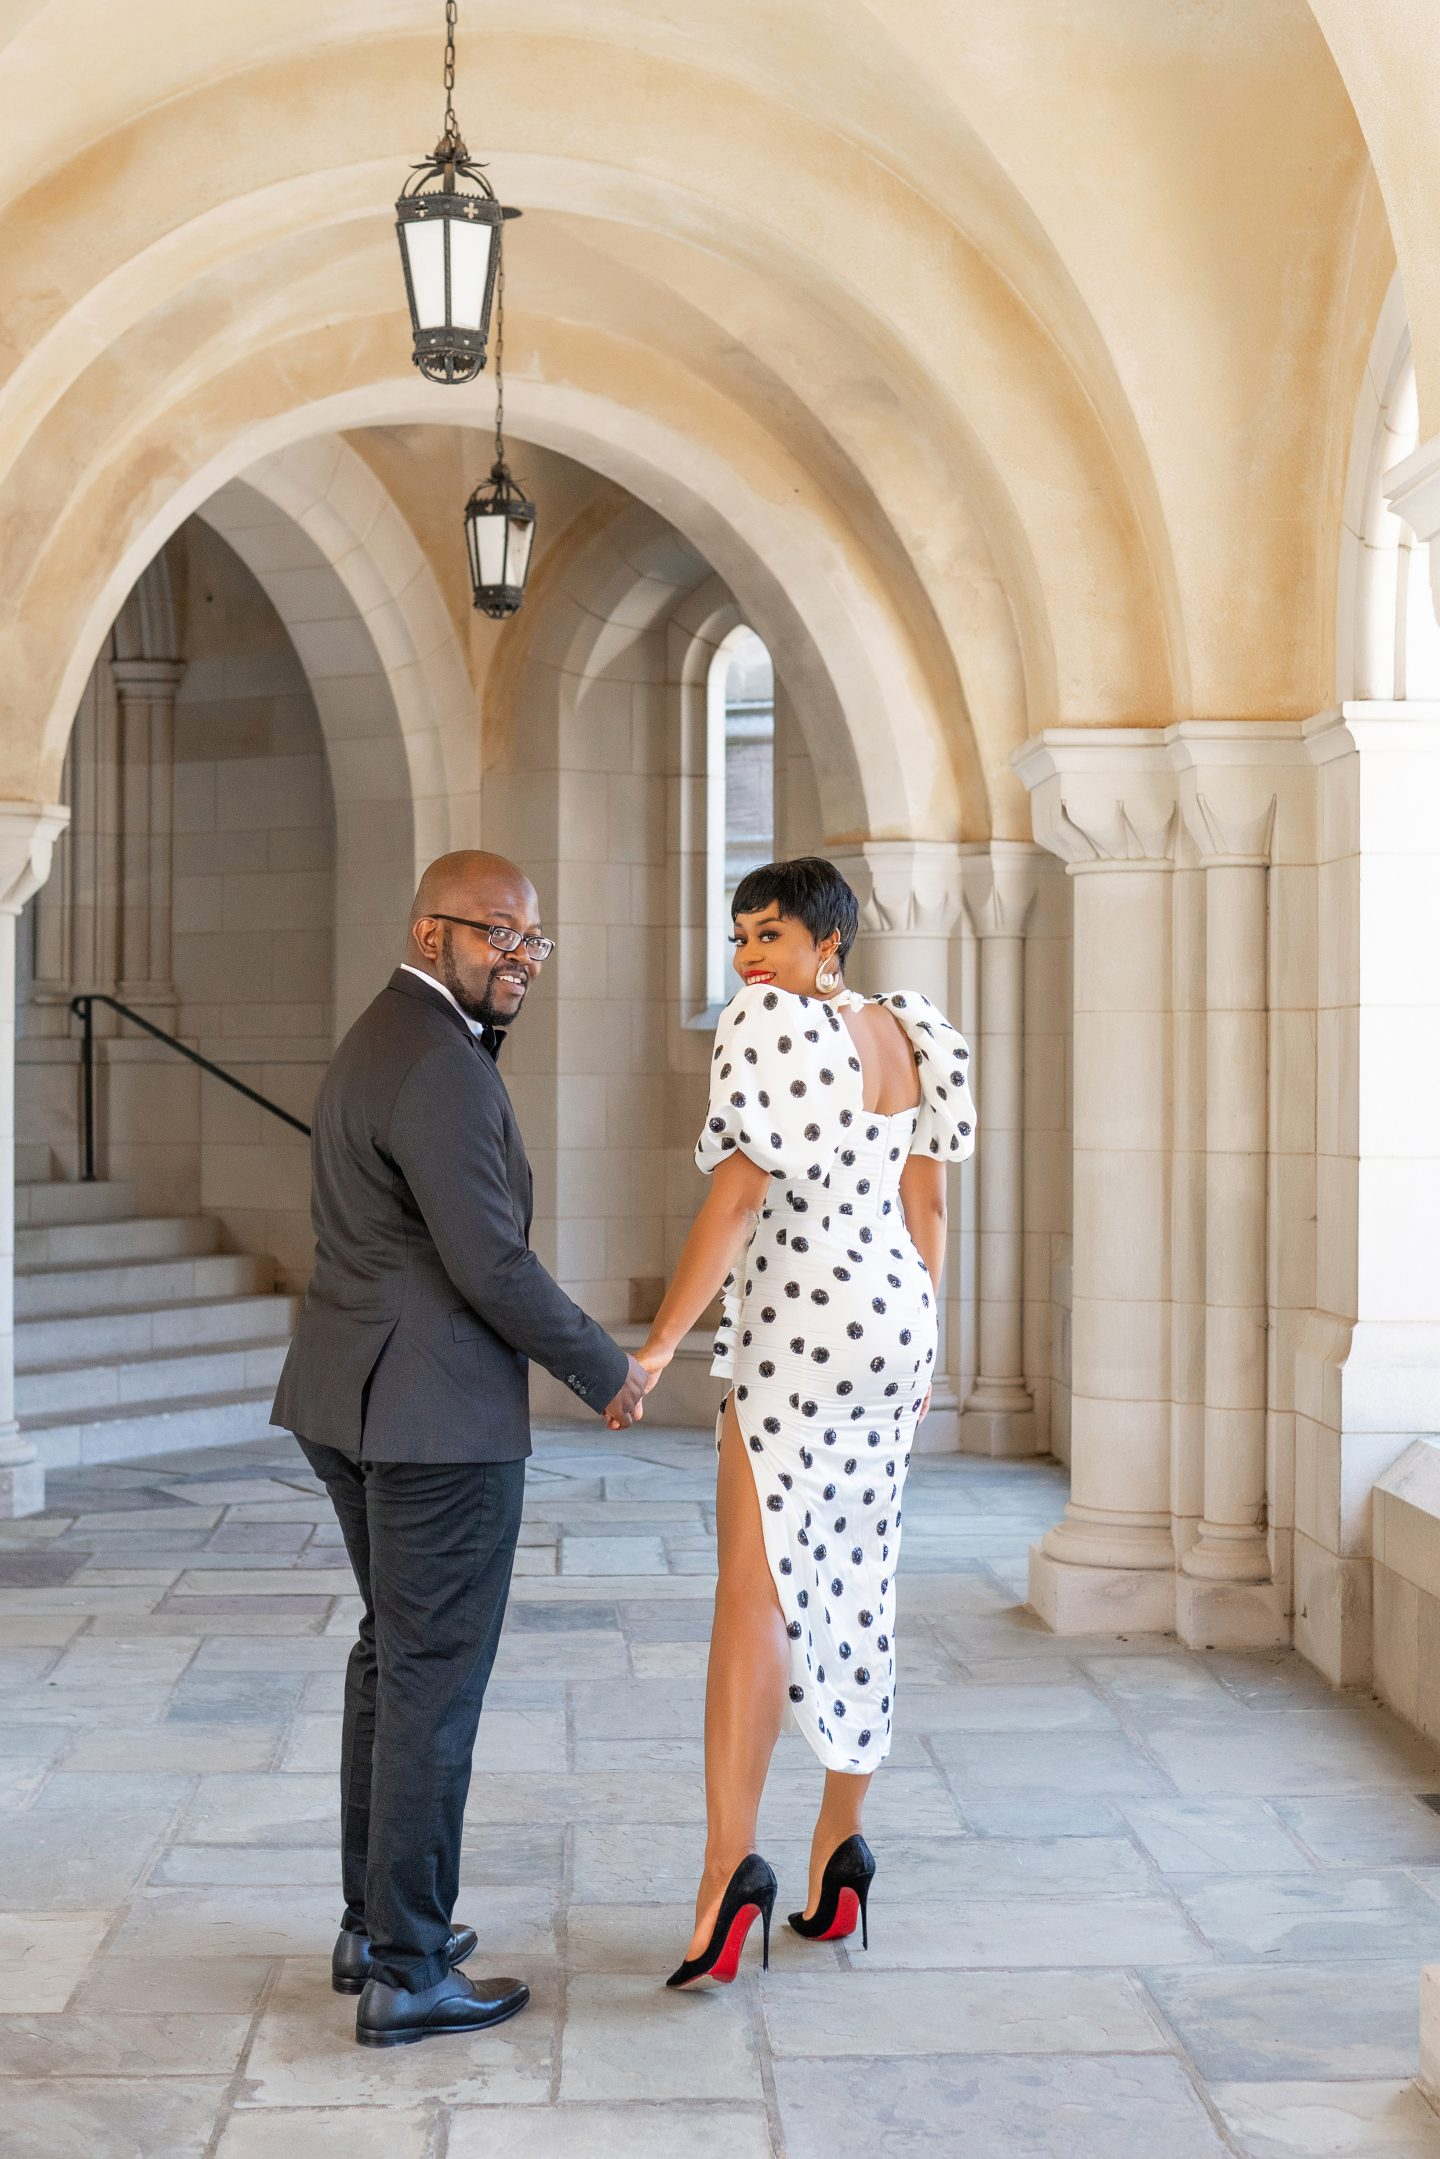 stella-adewunmi-of-jadore-fashion-blog-shares-date-night-ideas